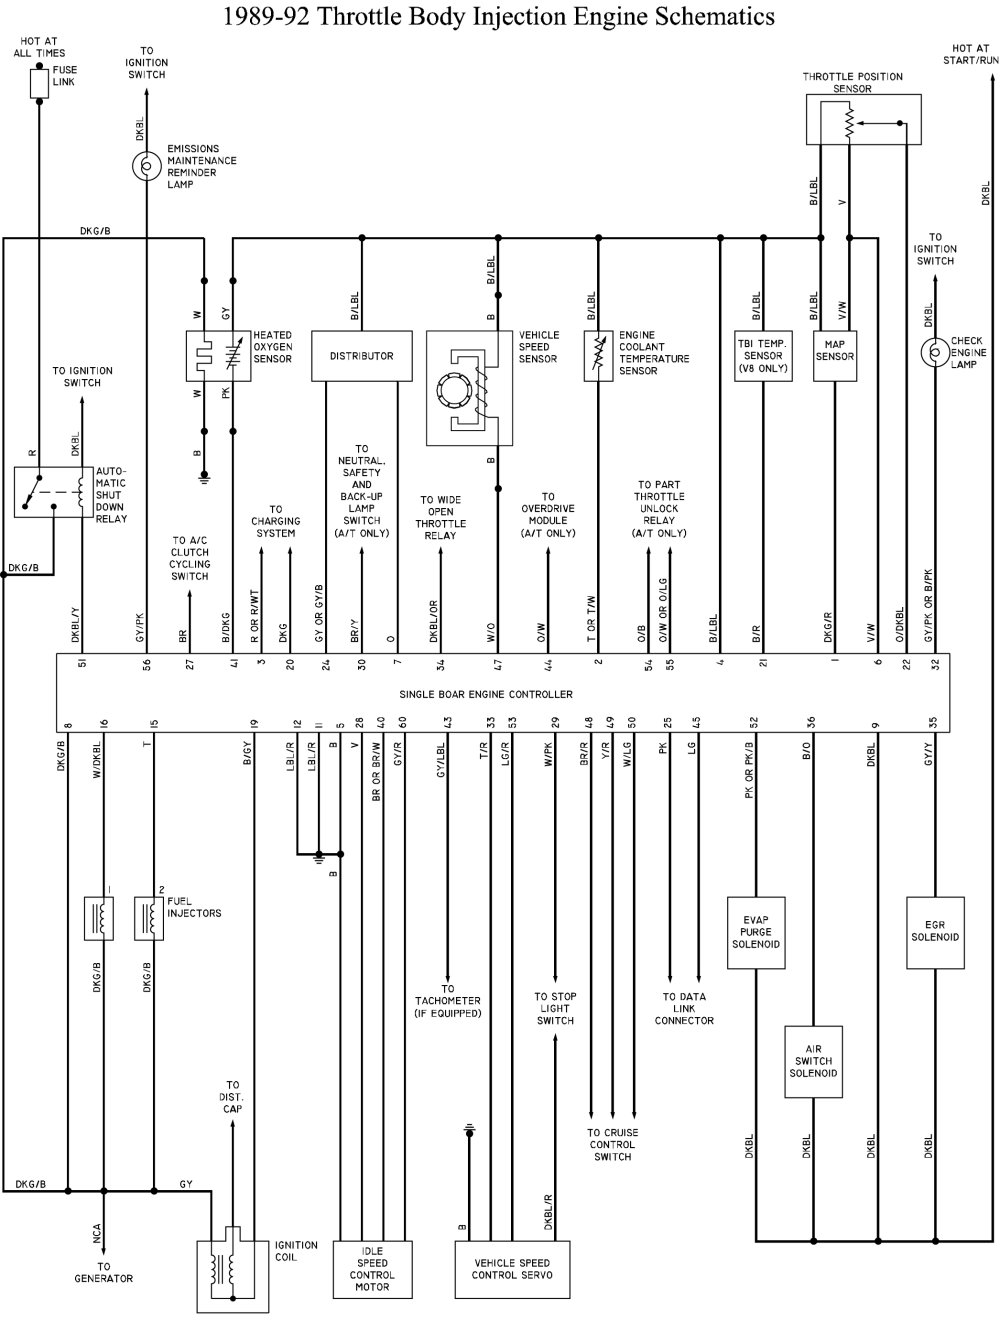 1993 Dodge D150 Wiring Diagram Libraries For 1991 Dakota 1992 W250 Diesel Free You U20221991 Headlight